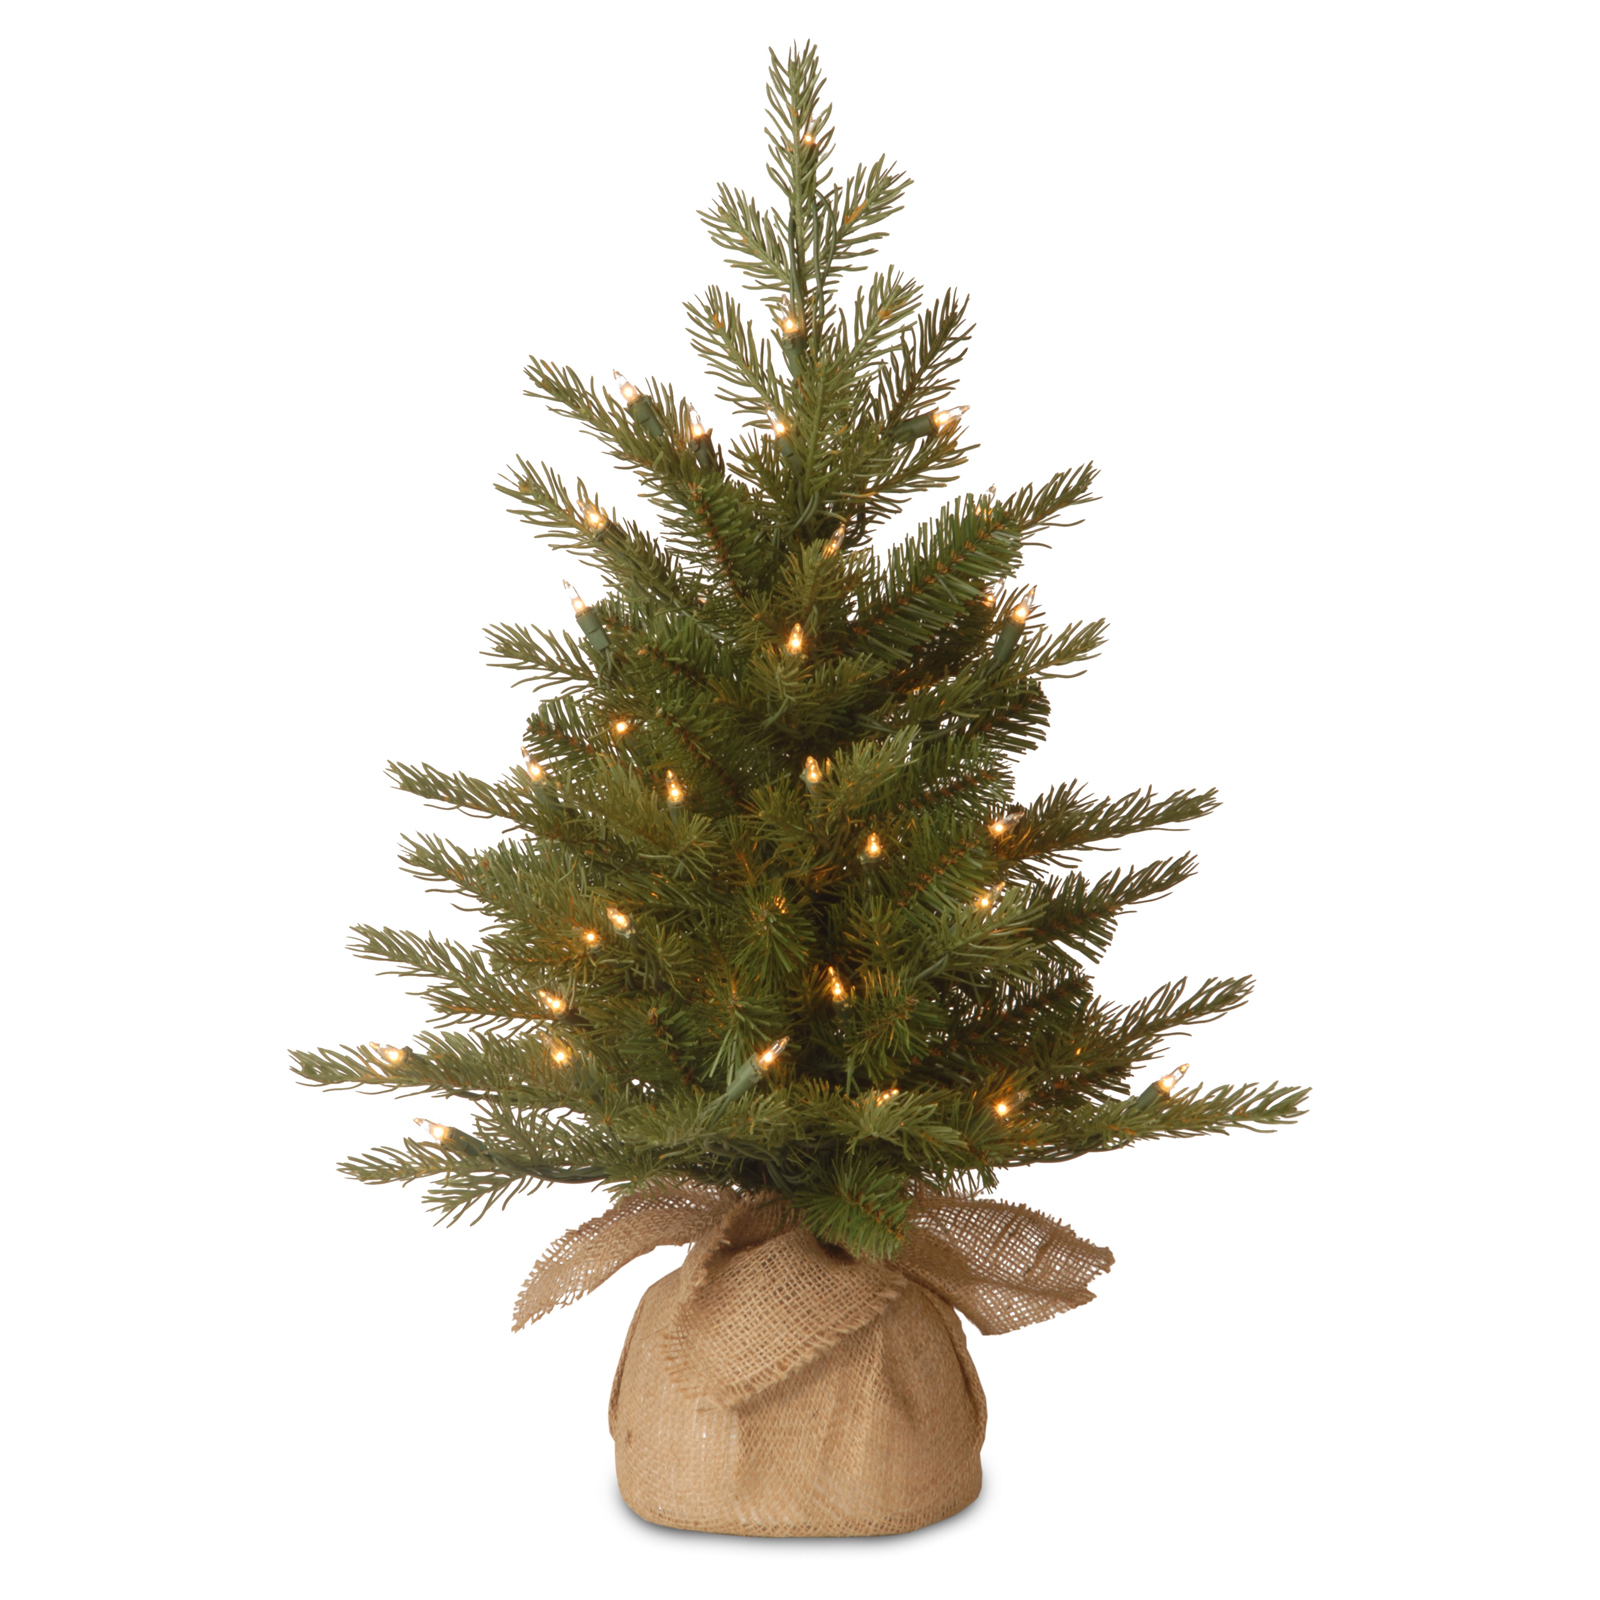 Real Or Fake Christmas Tree: Feel Real Nordic Spruce Small Christmas Tree